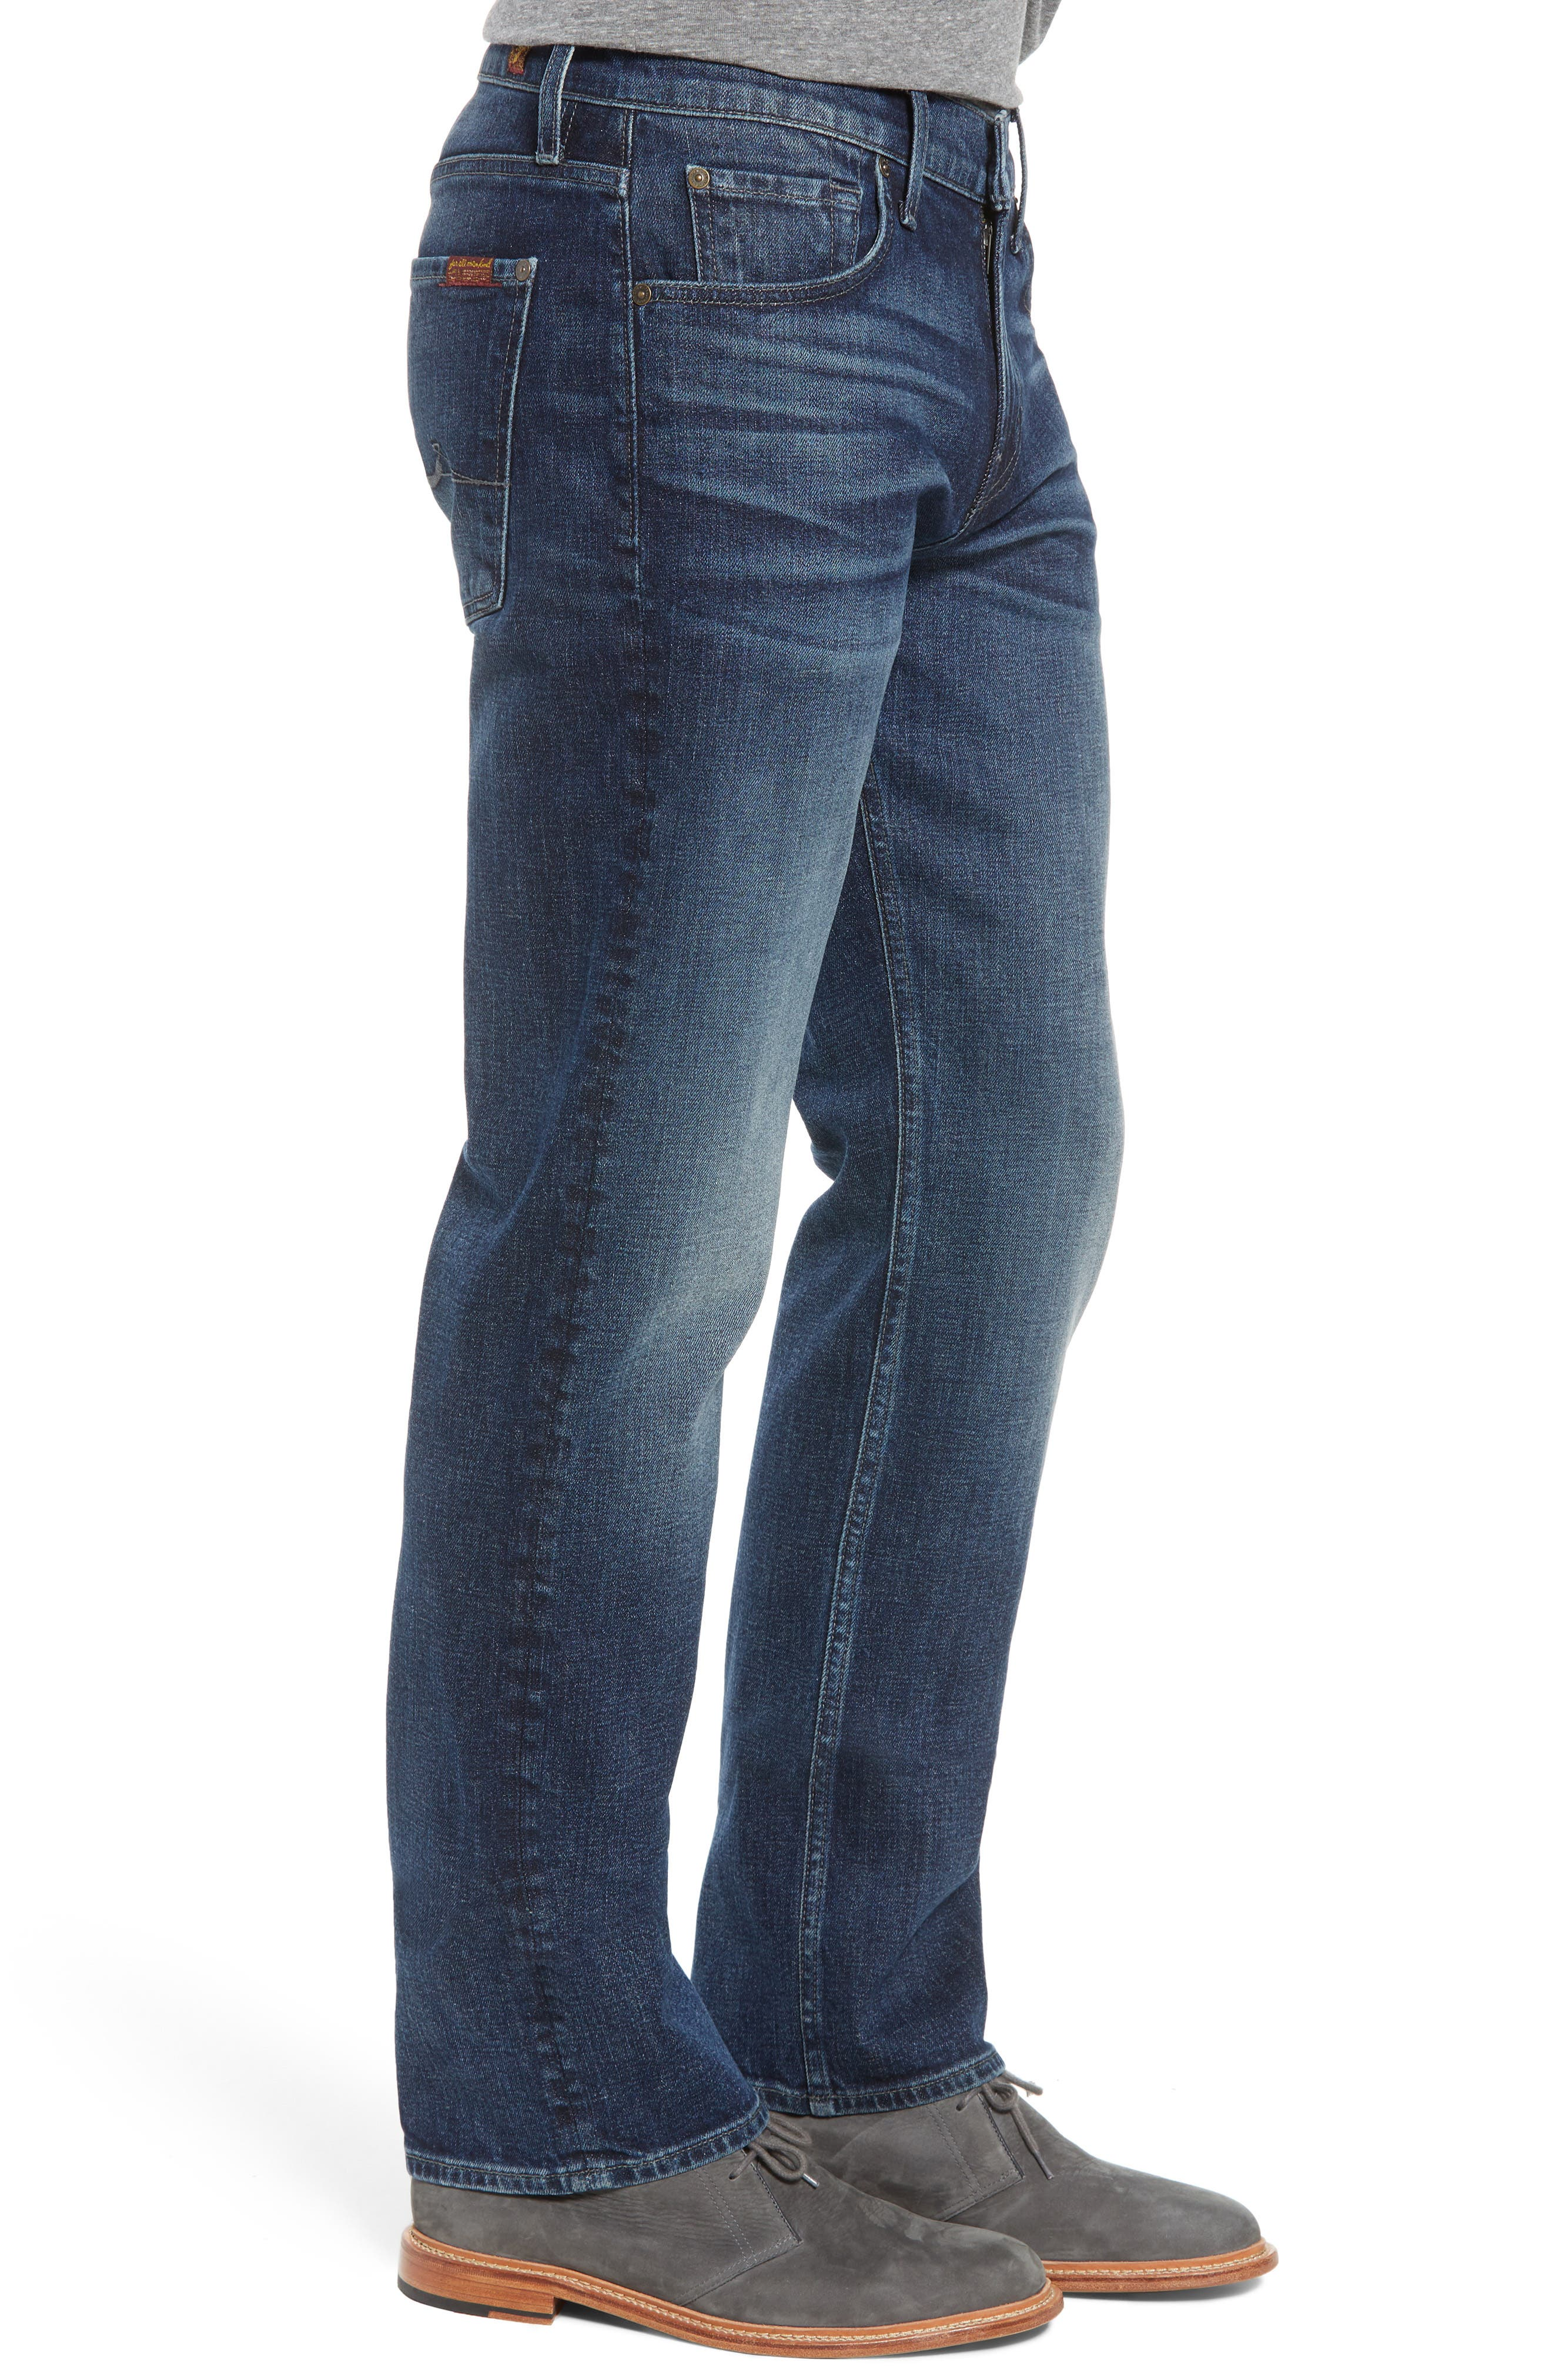 Austyn Relaxed Fit Jeans,                             Alternate thumbnail 3, color,                             401